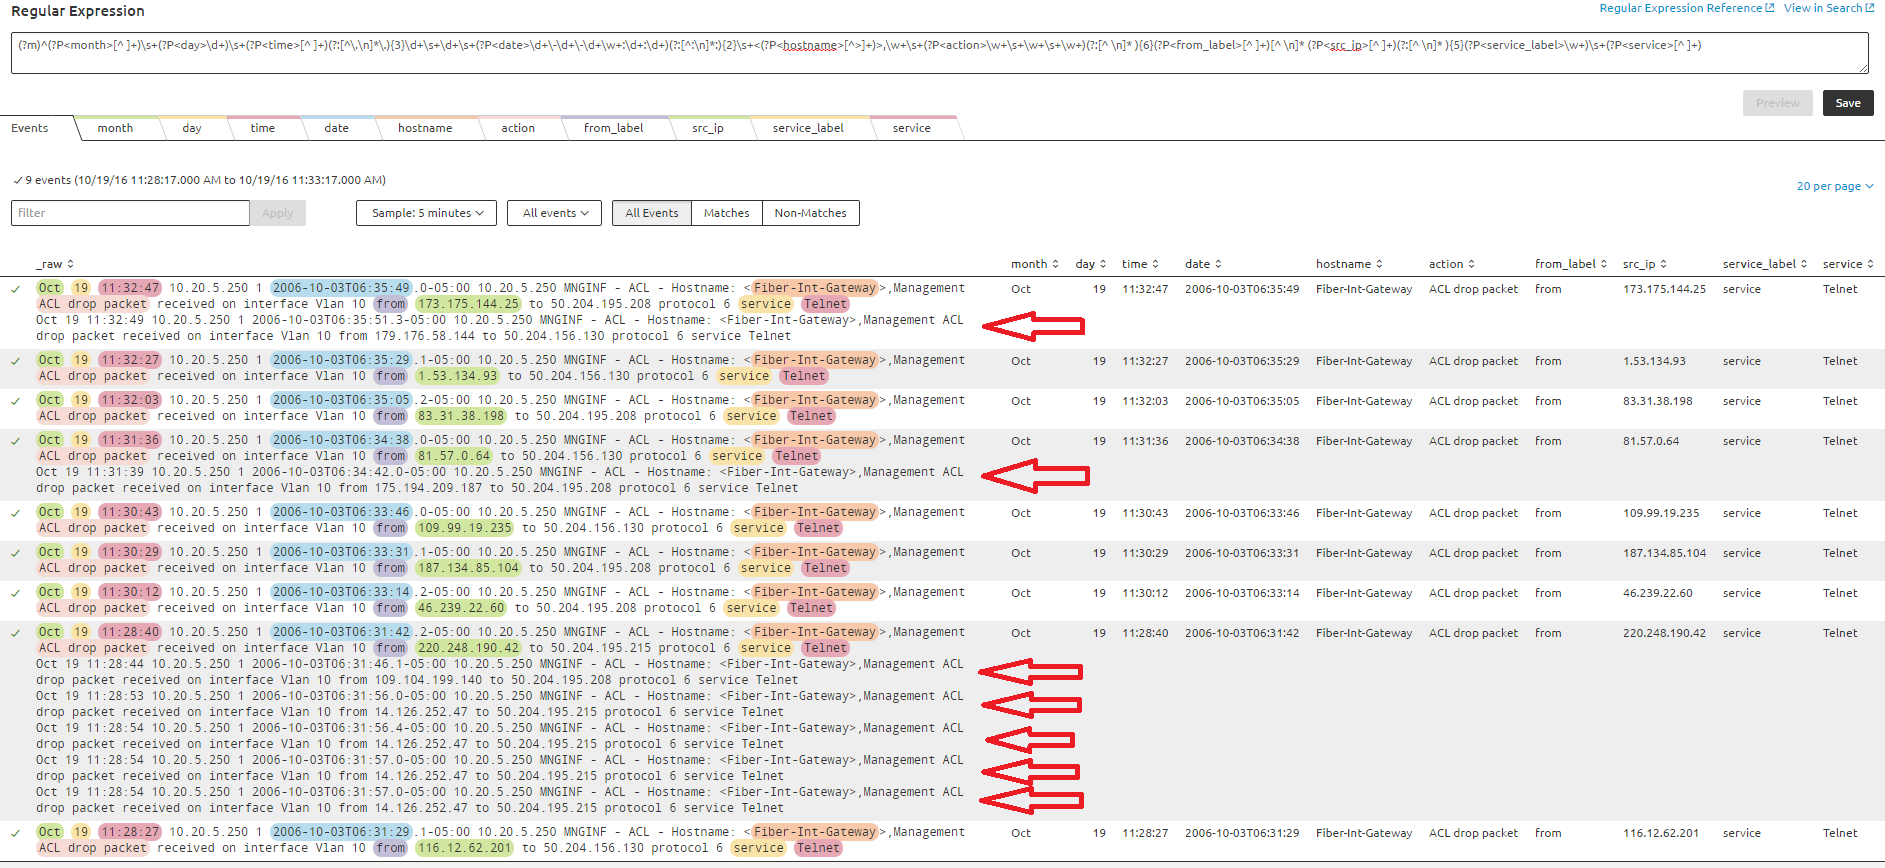 Splunk REGEX working perfectly for single line, not